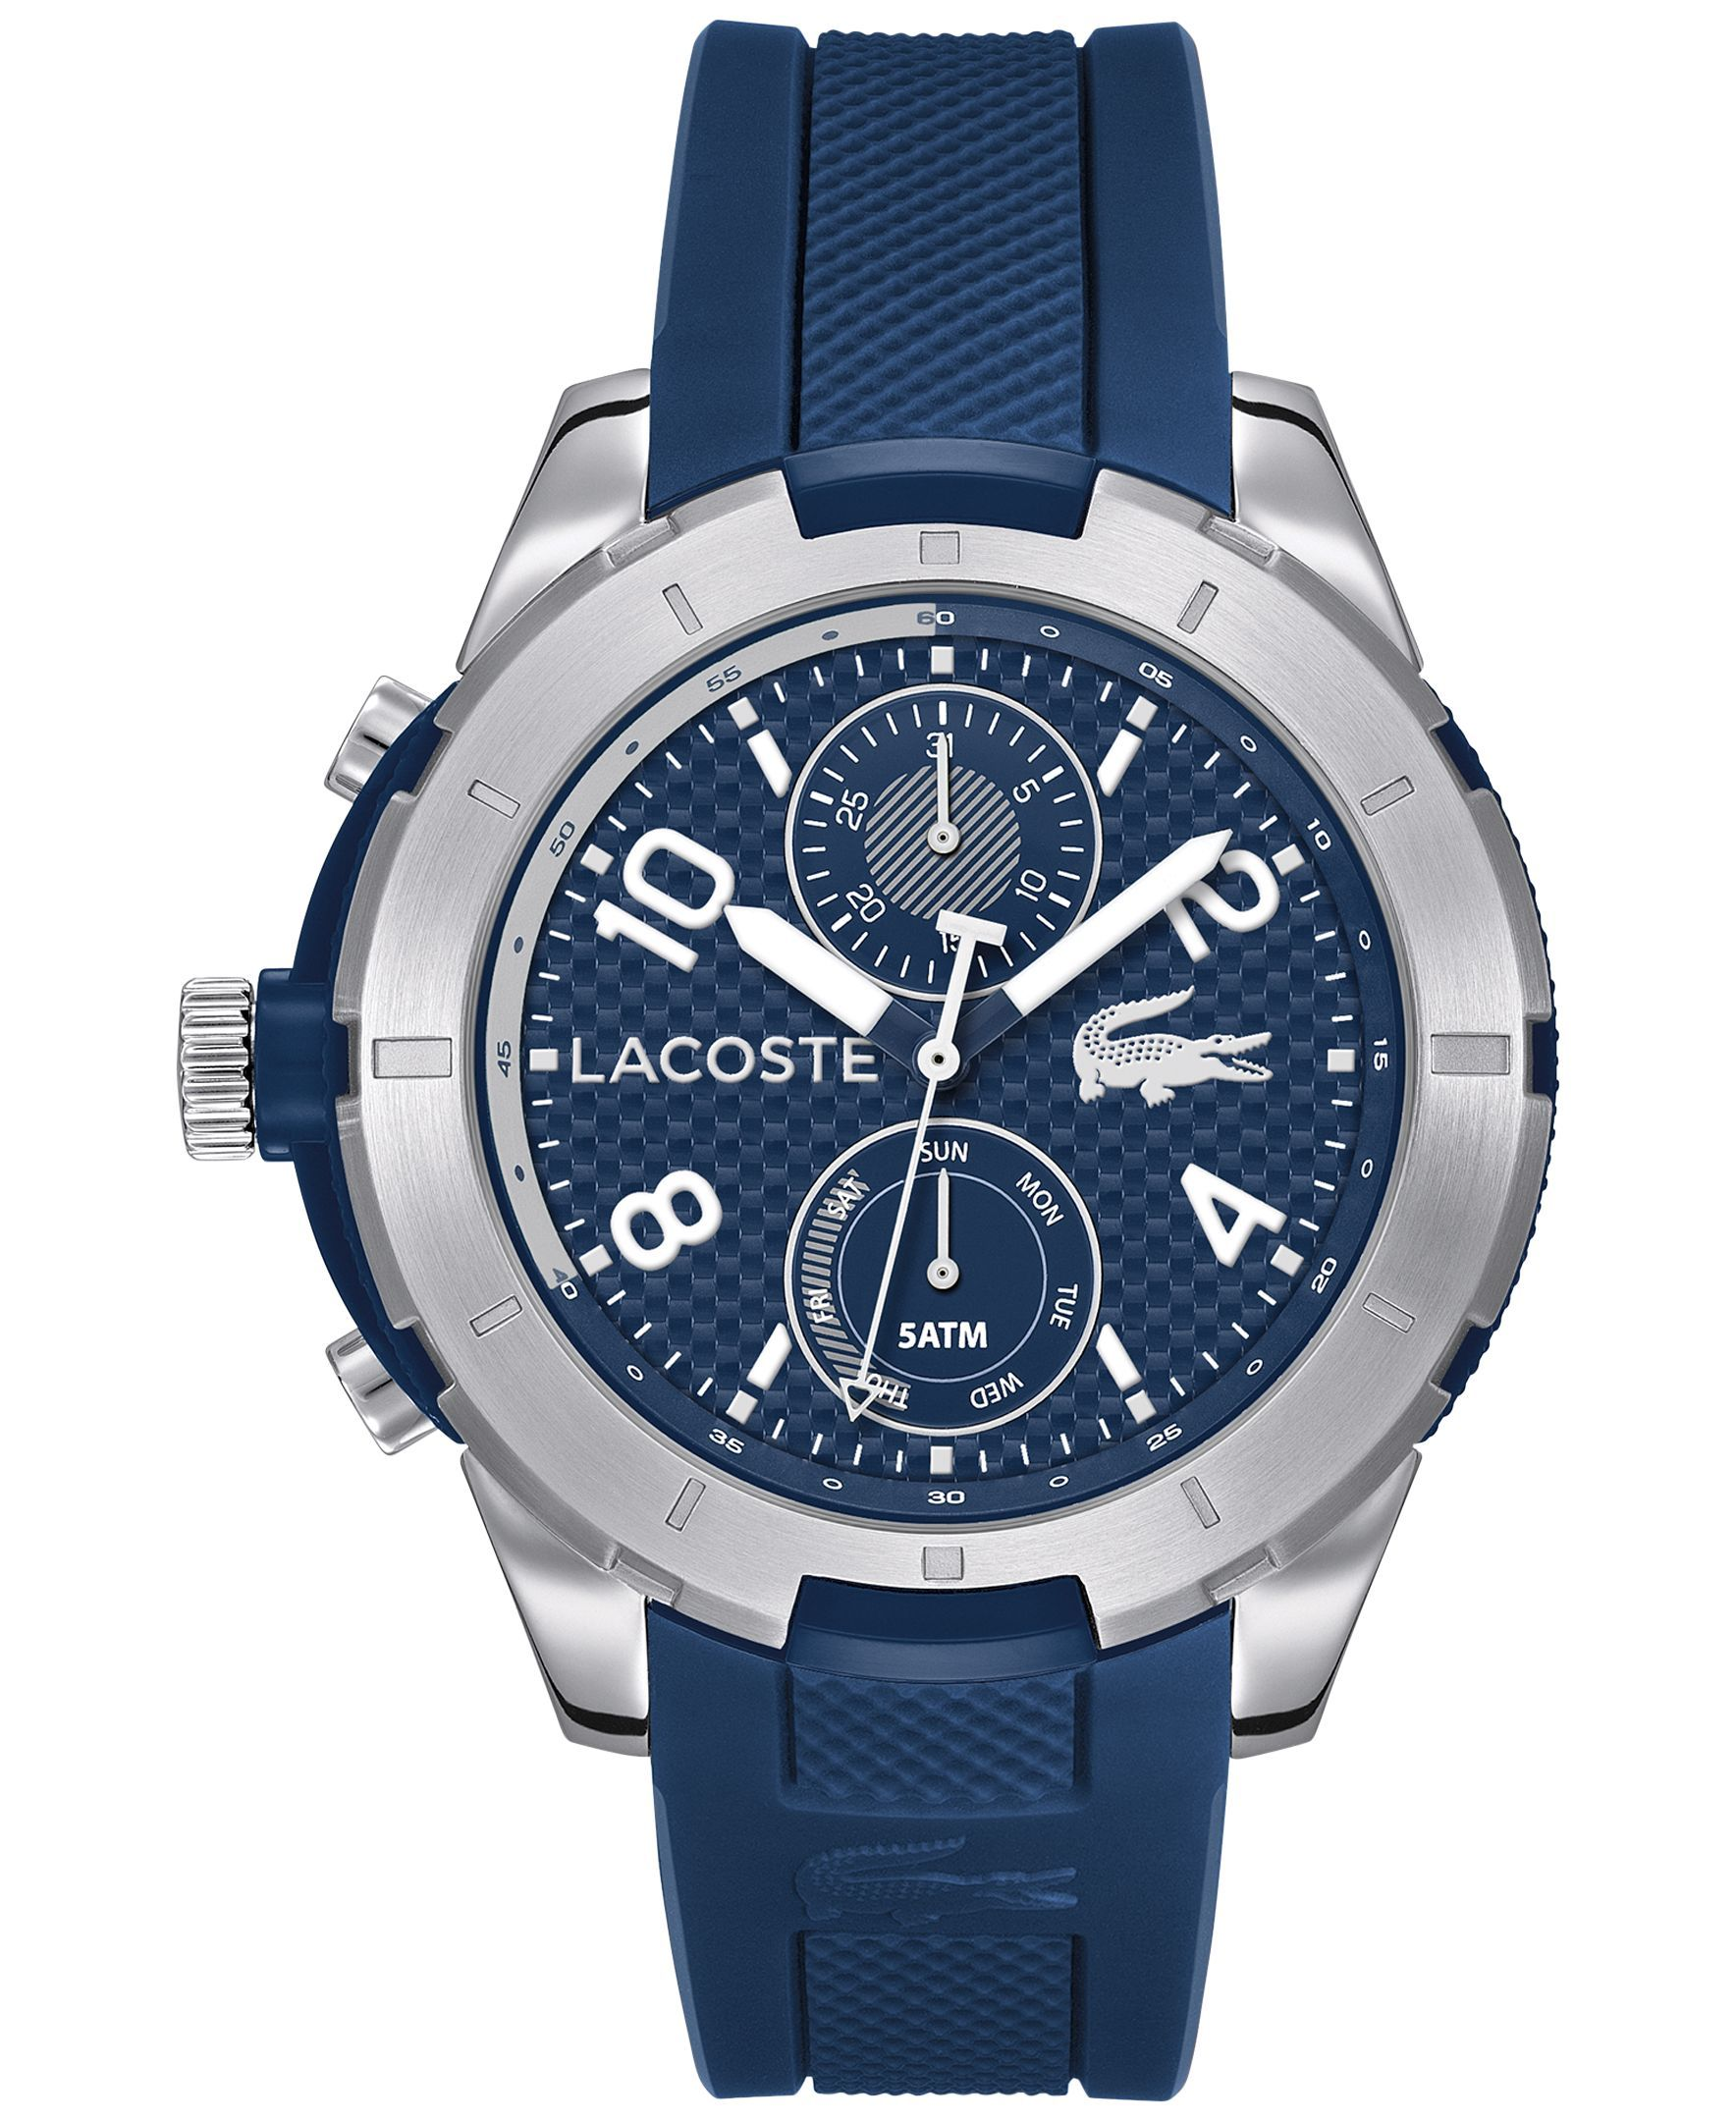 lacoste men s tonga blue silicone strap watch 50mm 2010761 lacoste men s tonga blue silicone strap watch 50mm 2010761